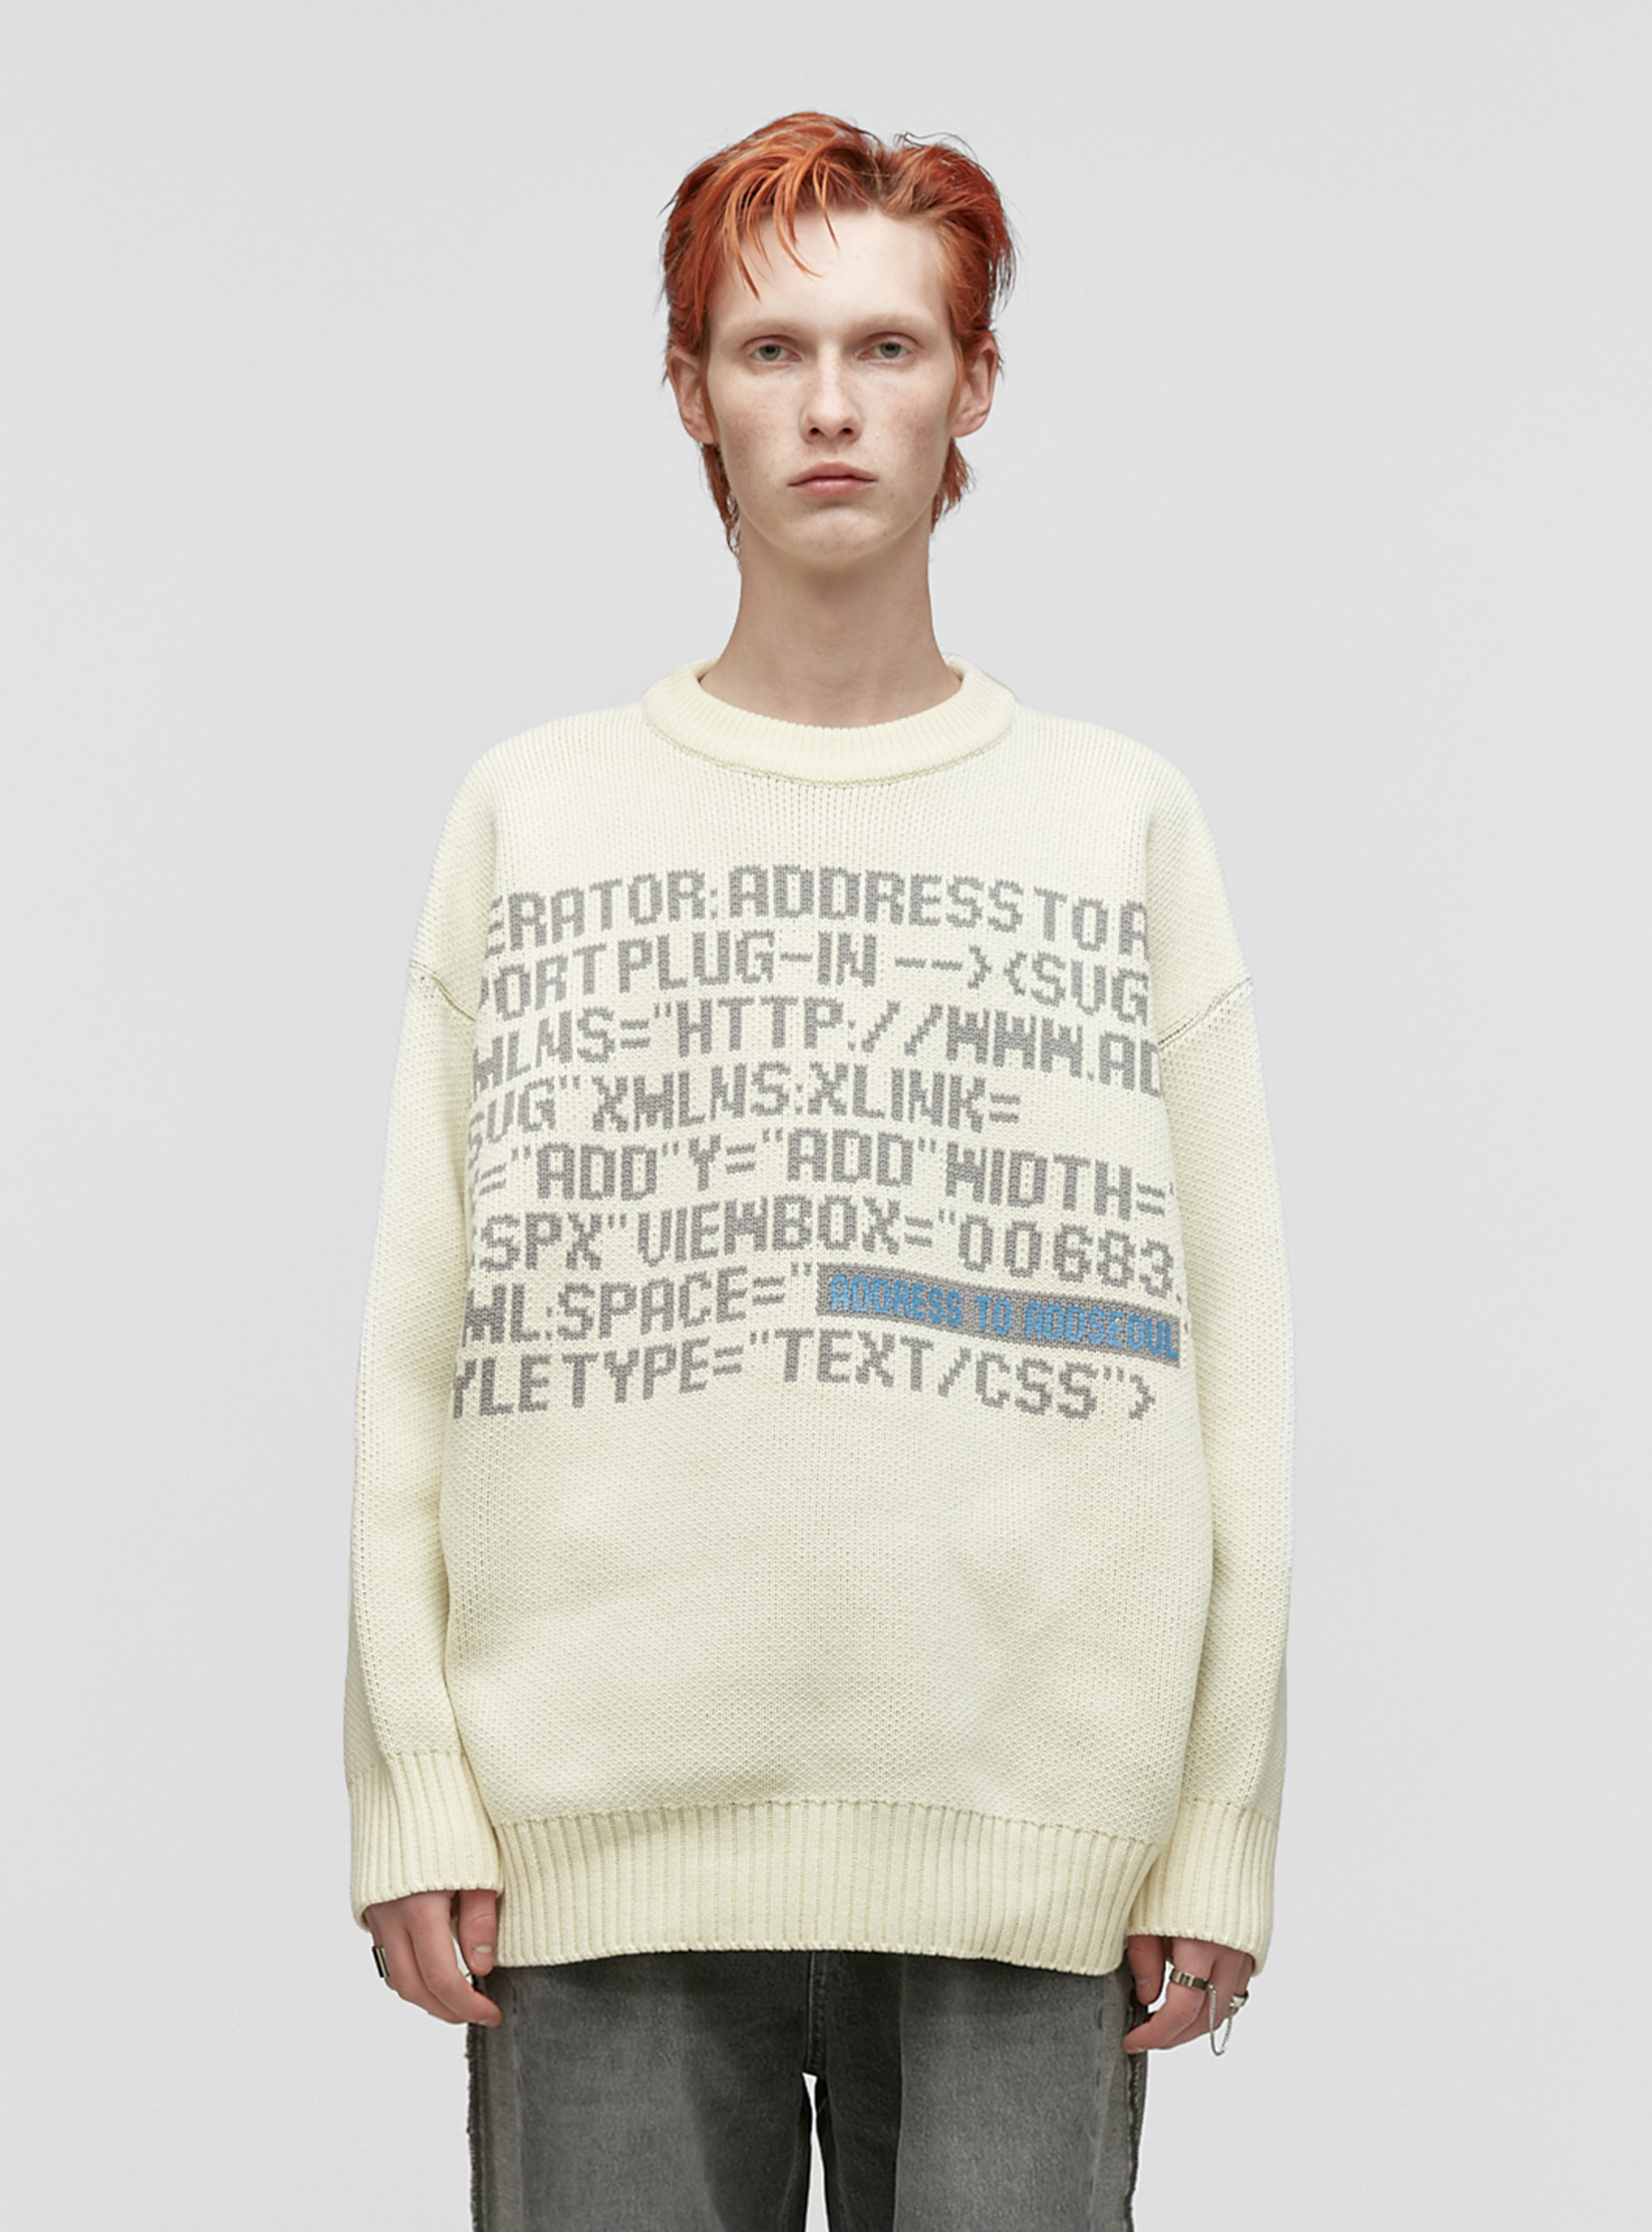 LETTERING JACQUARD HEAVY KNIT IVORY